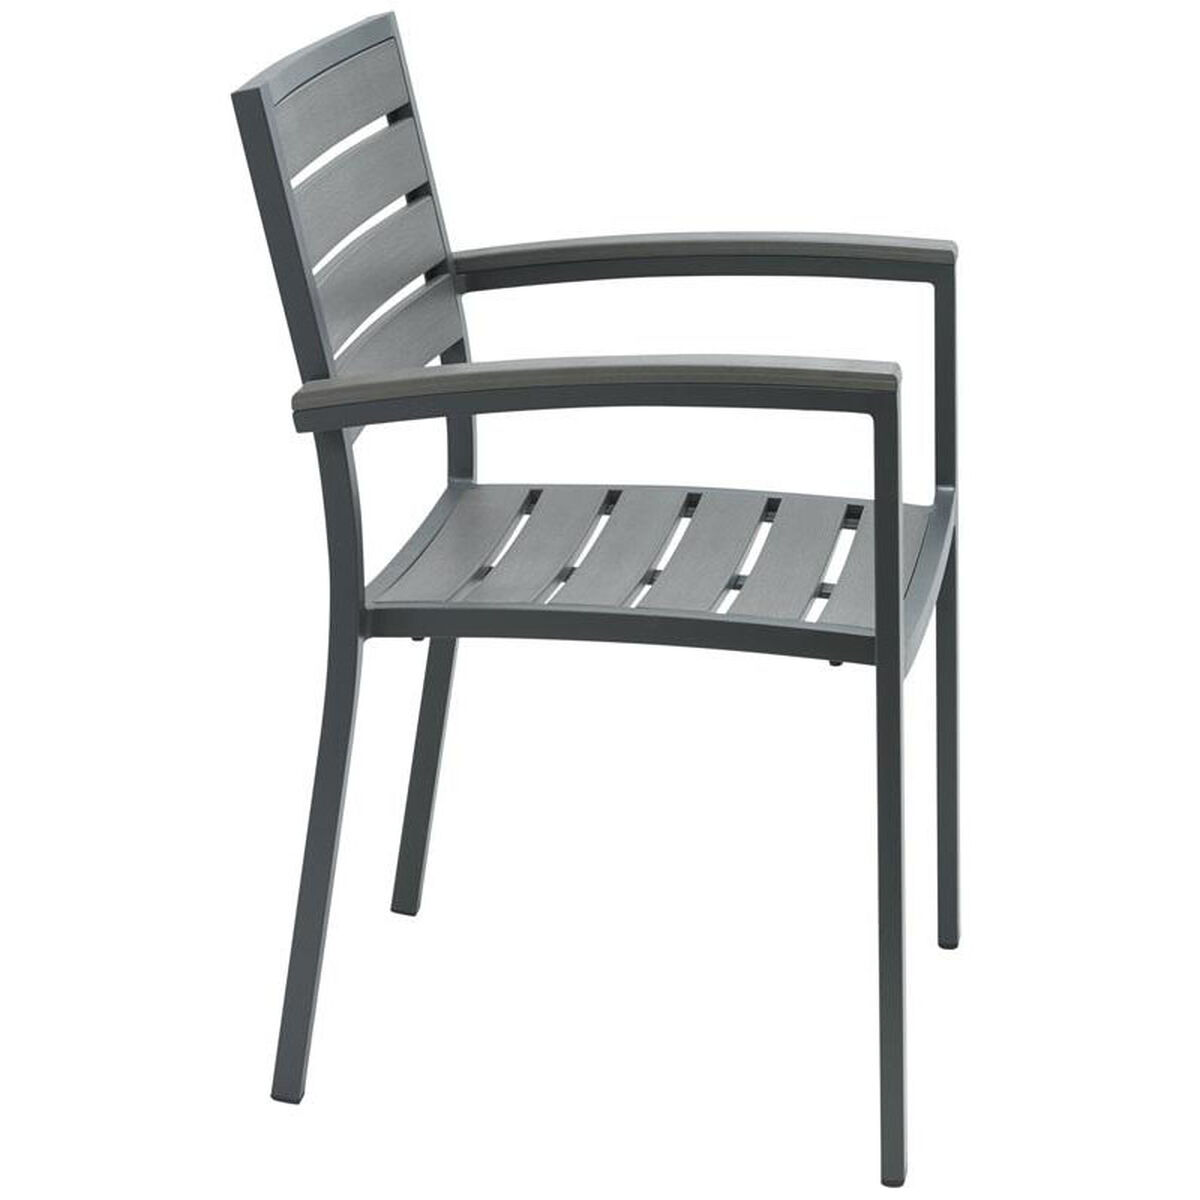 Kfi Seating Eveleen Aluminum Outdoor Arm Chair With